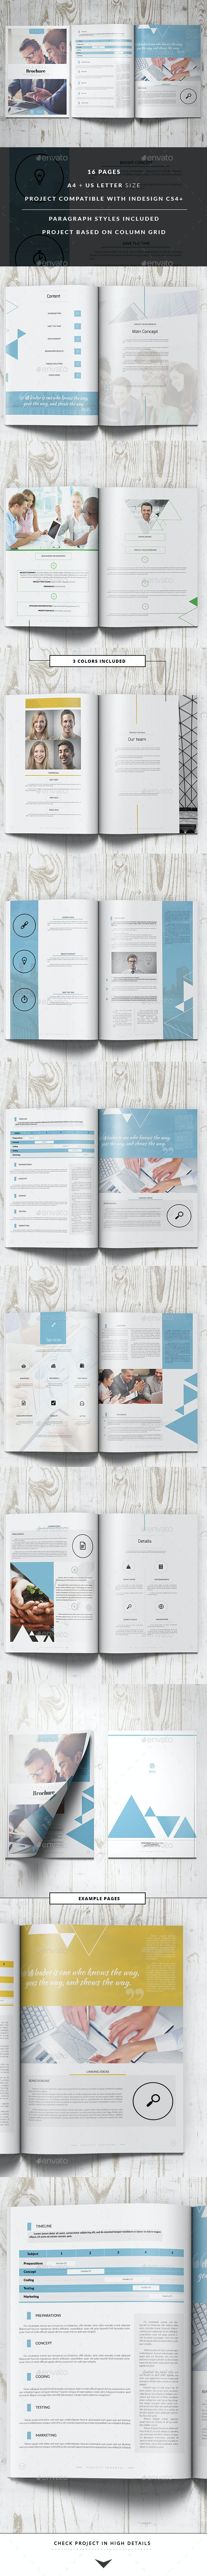 Project Proposal Business Template - Proposals & Invoices Stationery